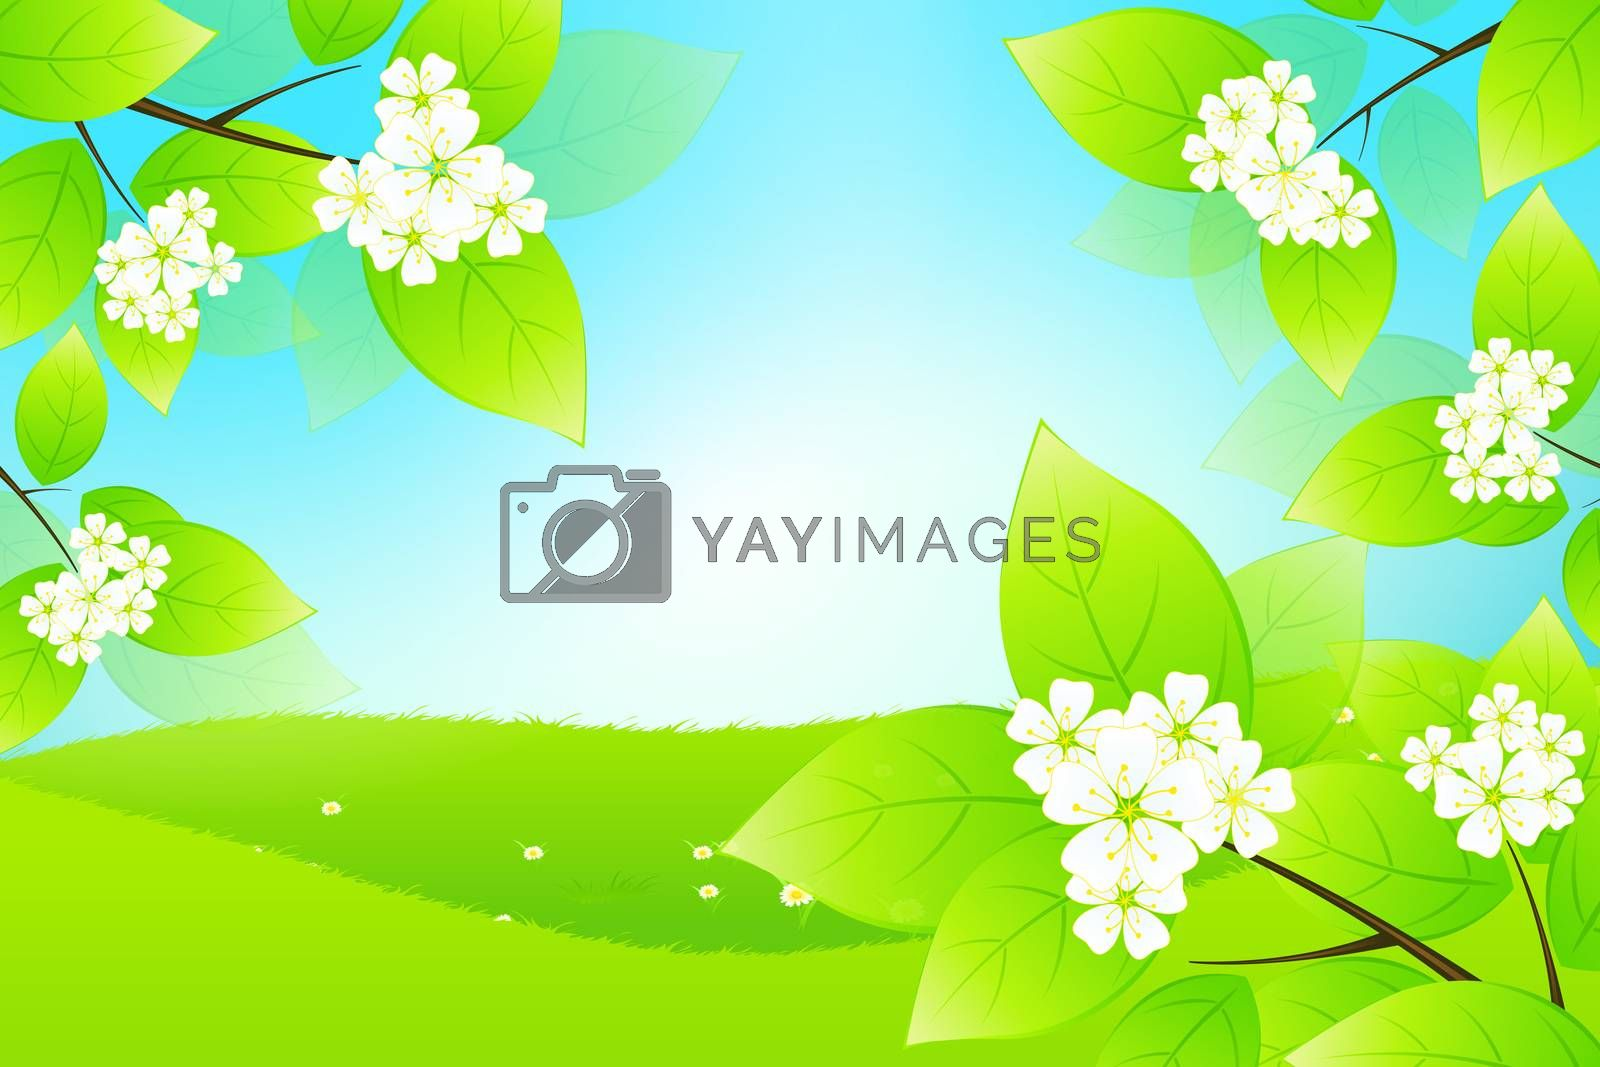 Green Landscape with Tree Branch by WaD